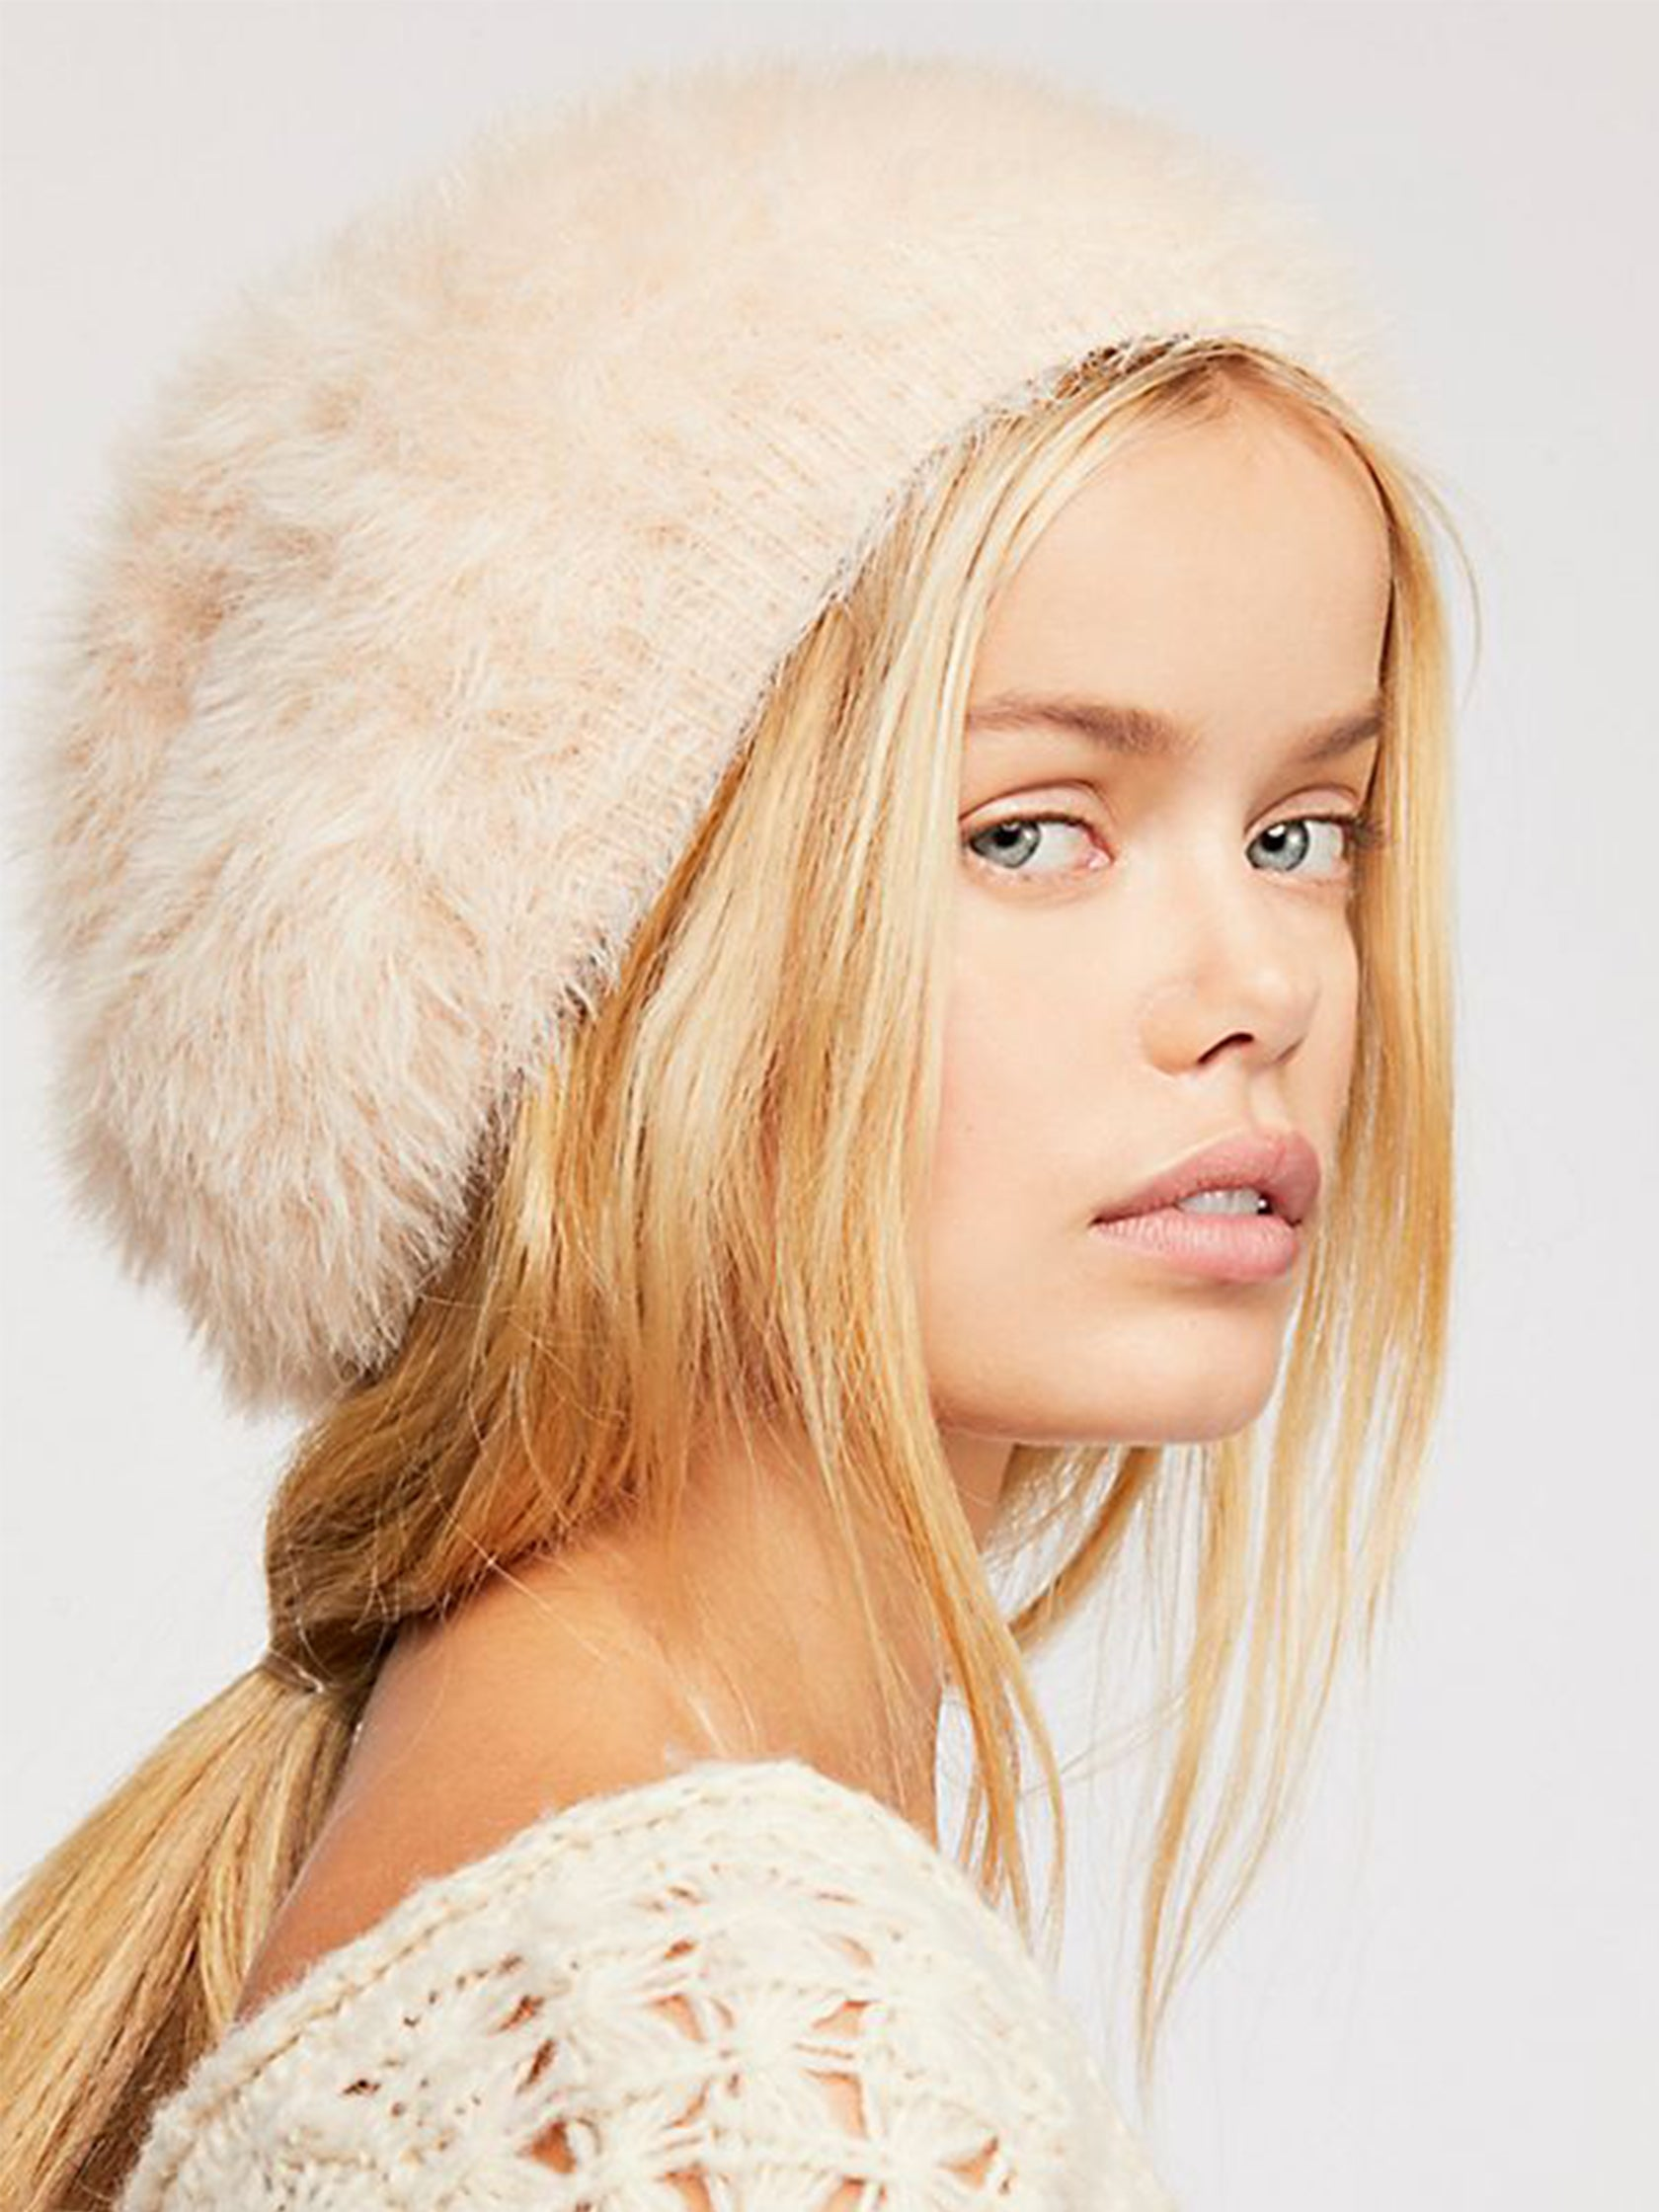 Girl outfit in a hat rental from Free People called Big Sky Slouchy Beanie 28ee51edd4b